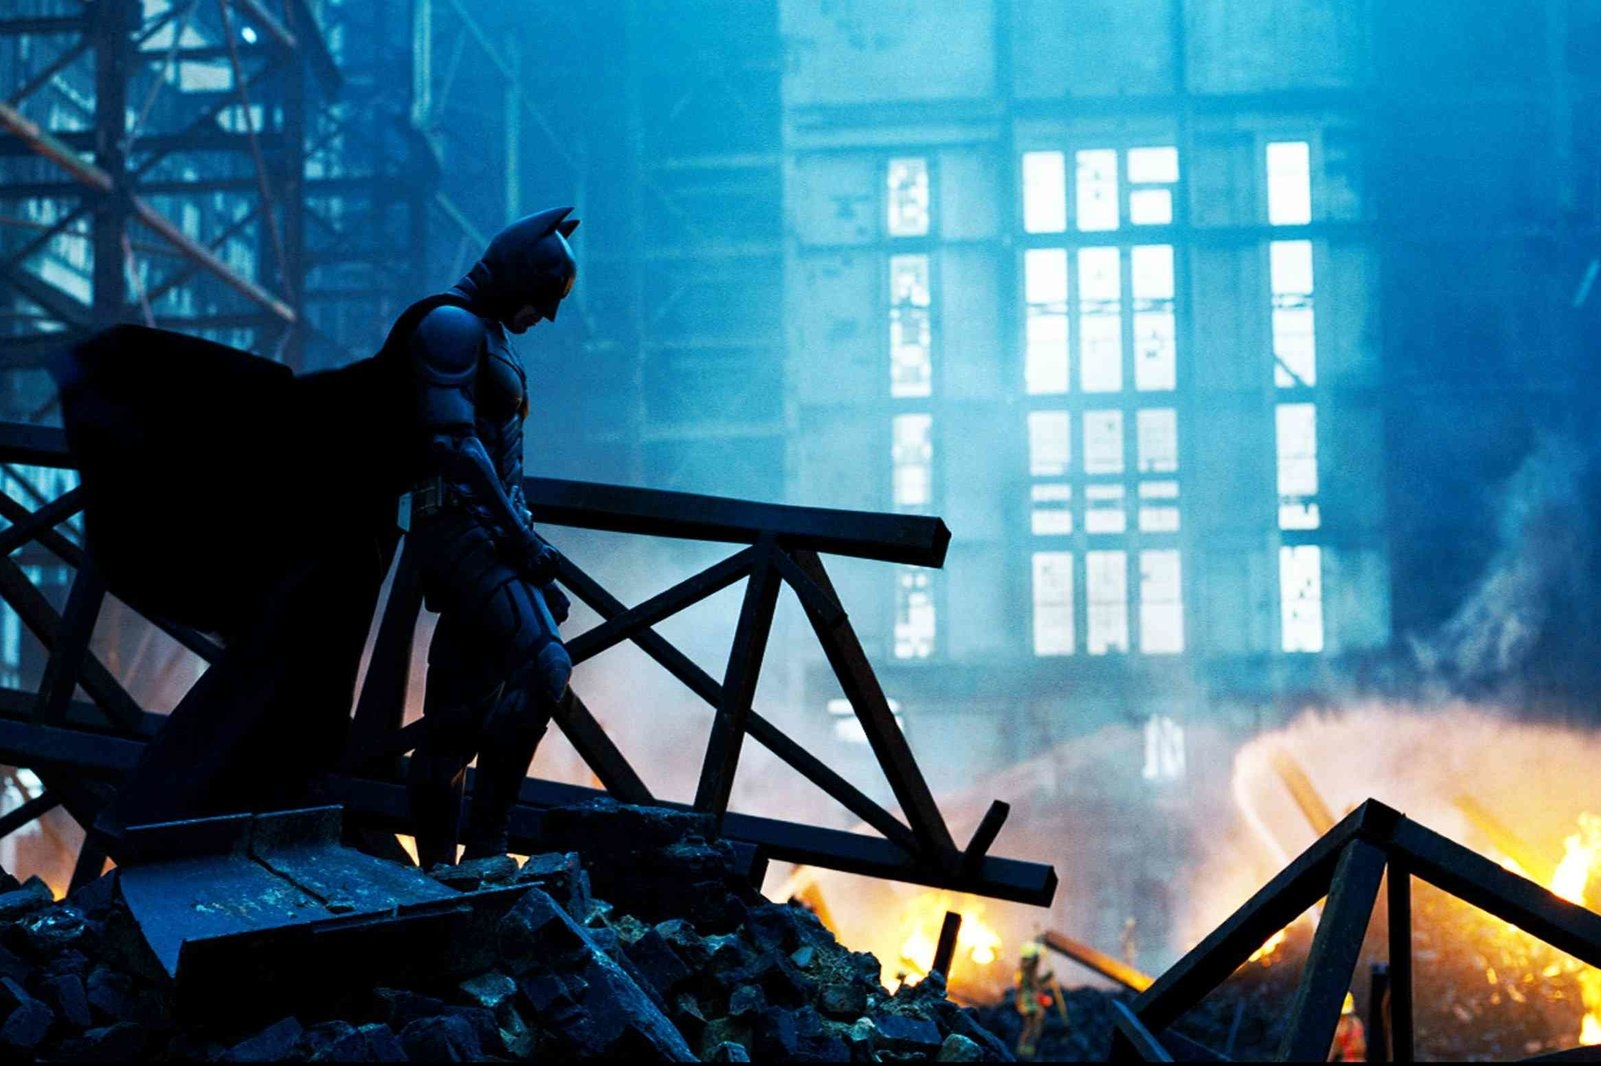 The Dark Knight (2008) - Directed by: Christopher NolanWritten by: Jonathan Nolan, Christopher Nolan